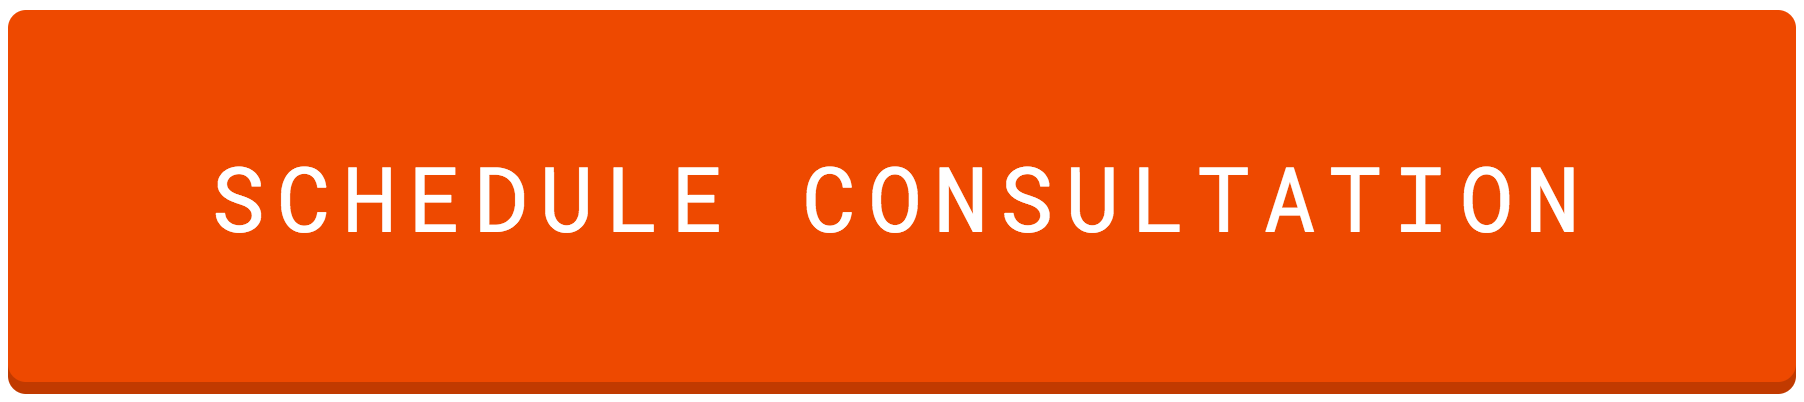 Consultation Button ReSize 250x56.png